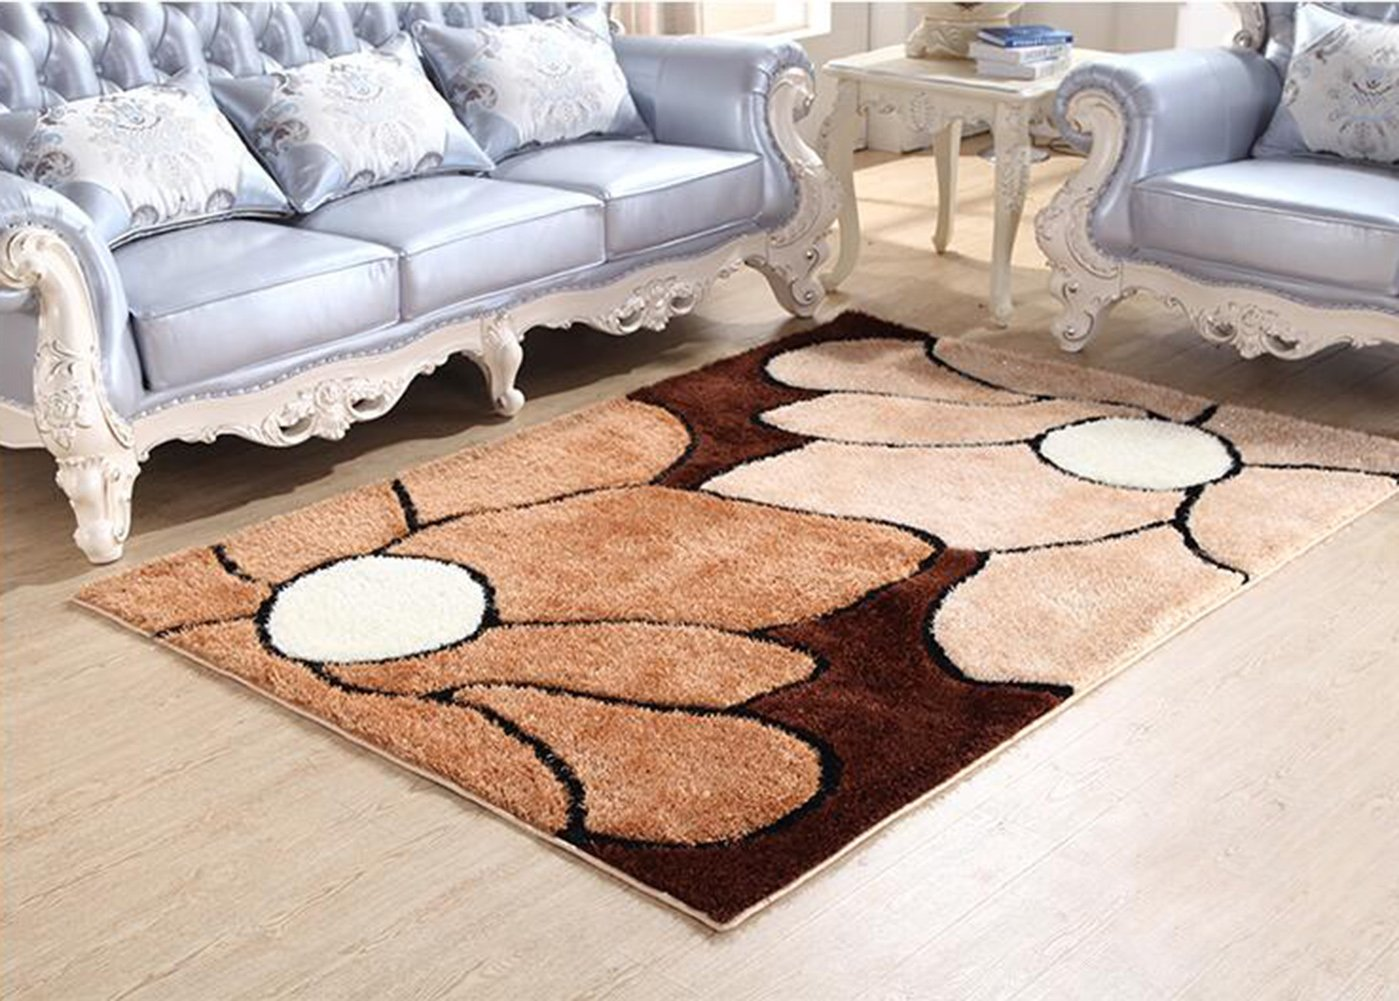 Modern Geometry Home Rugs - MeMoreCool Anti-slipping Bottom Living Room/Bedroom Carpets Thicken Design Various Patterns 63 X 91 Inch by MeMoreCool (Image #1)